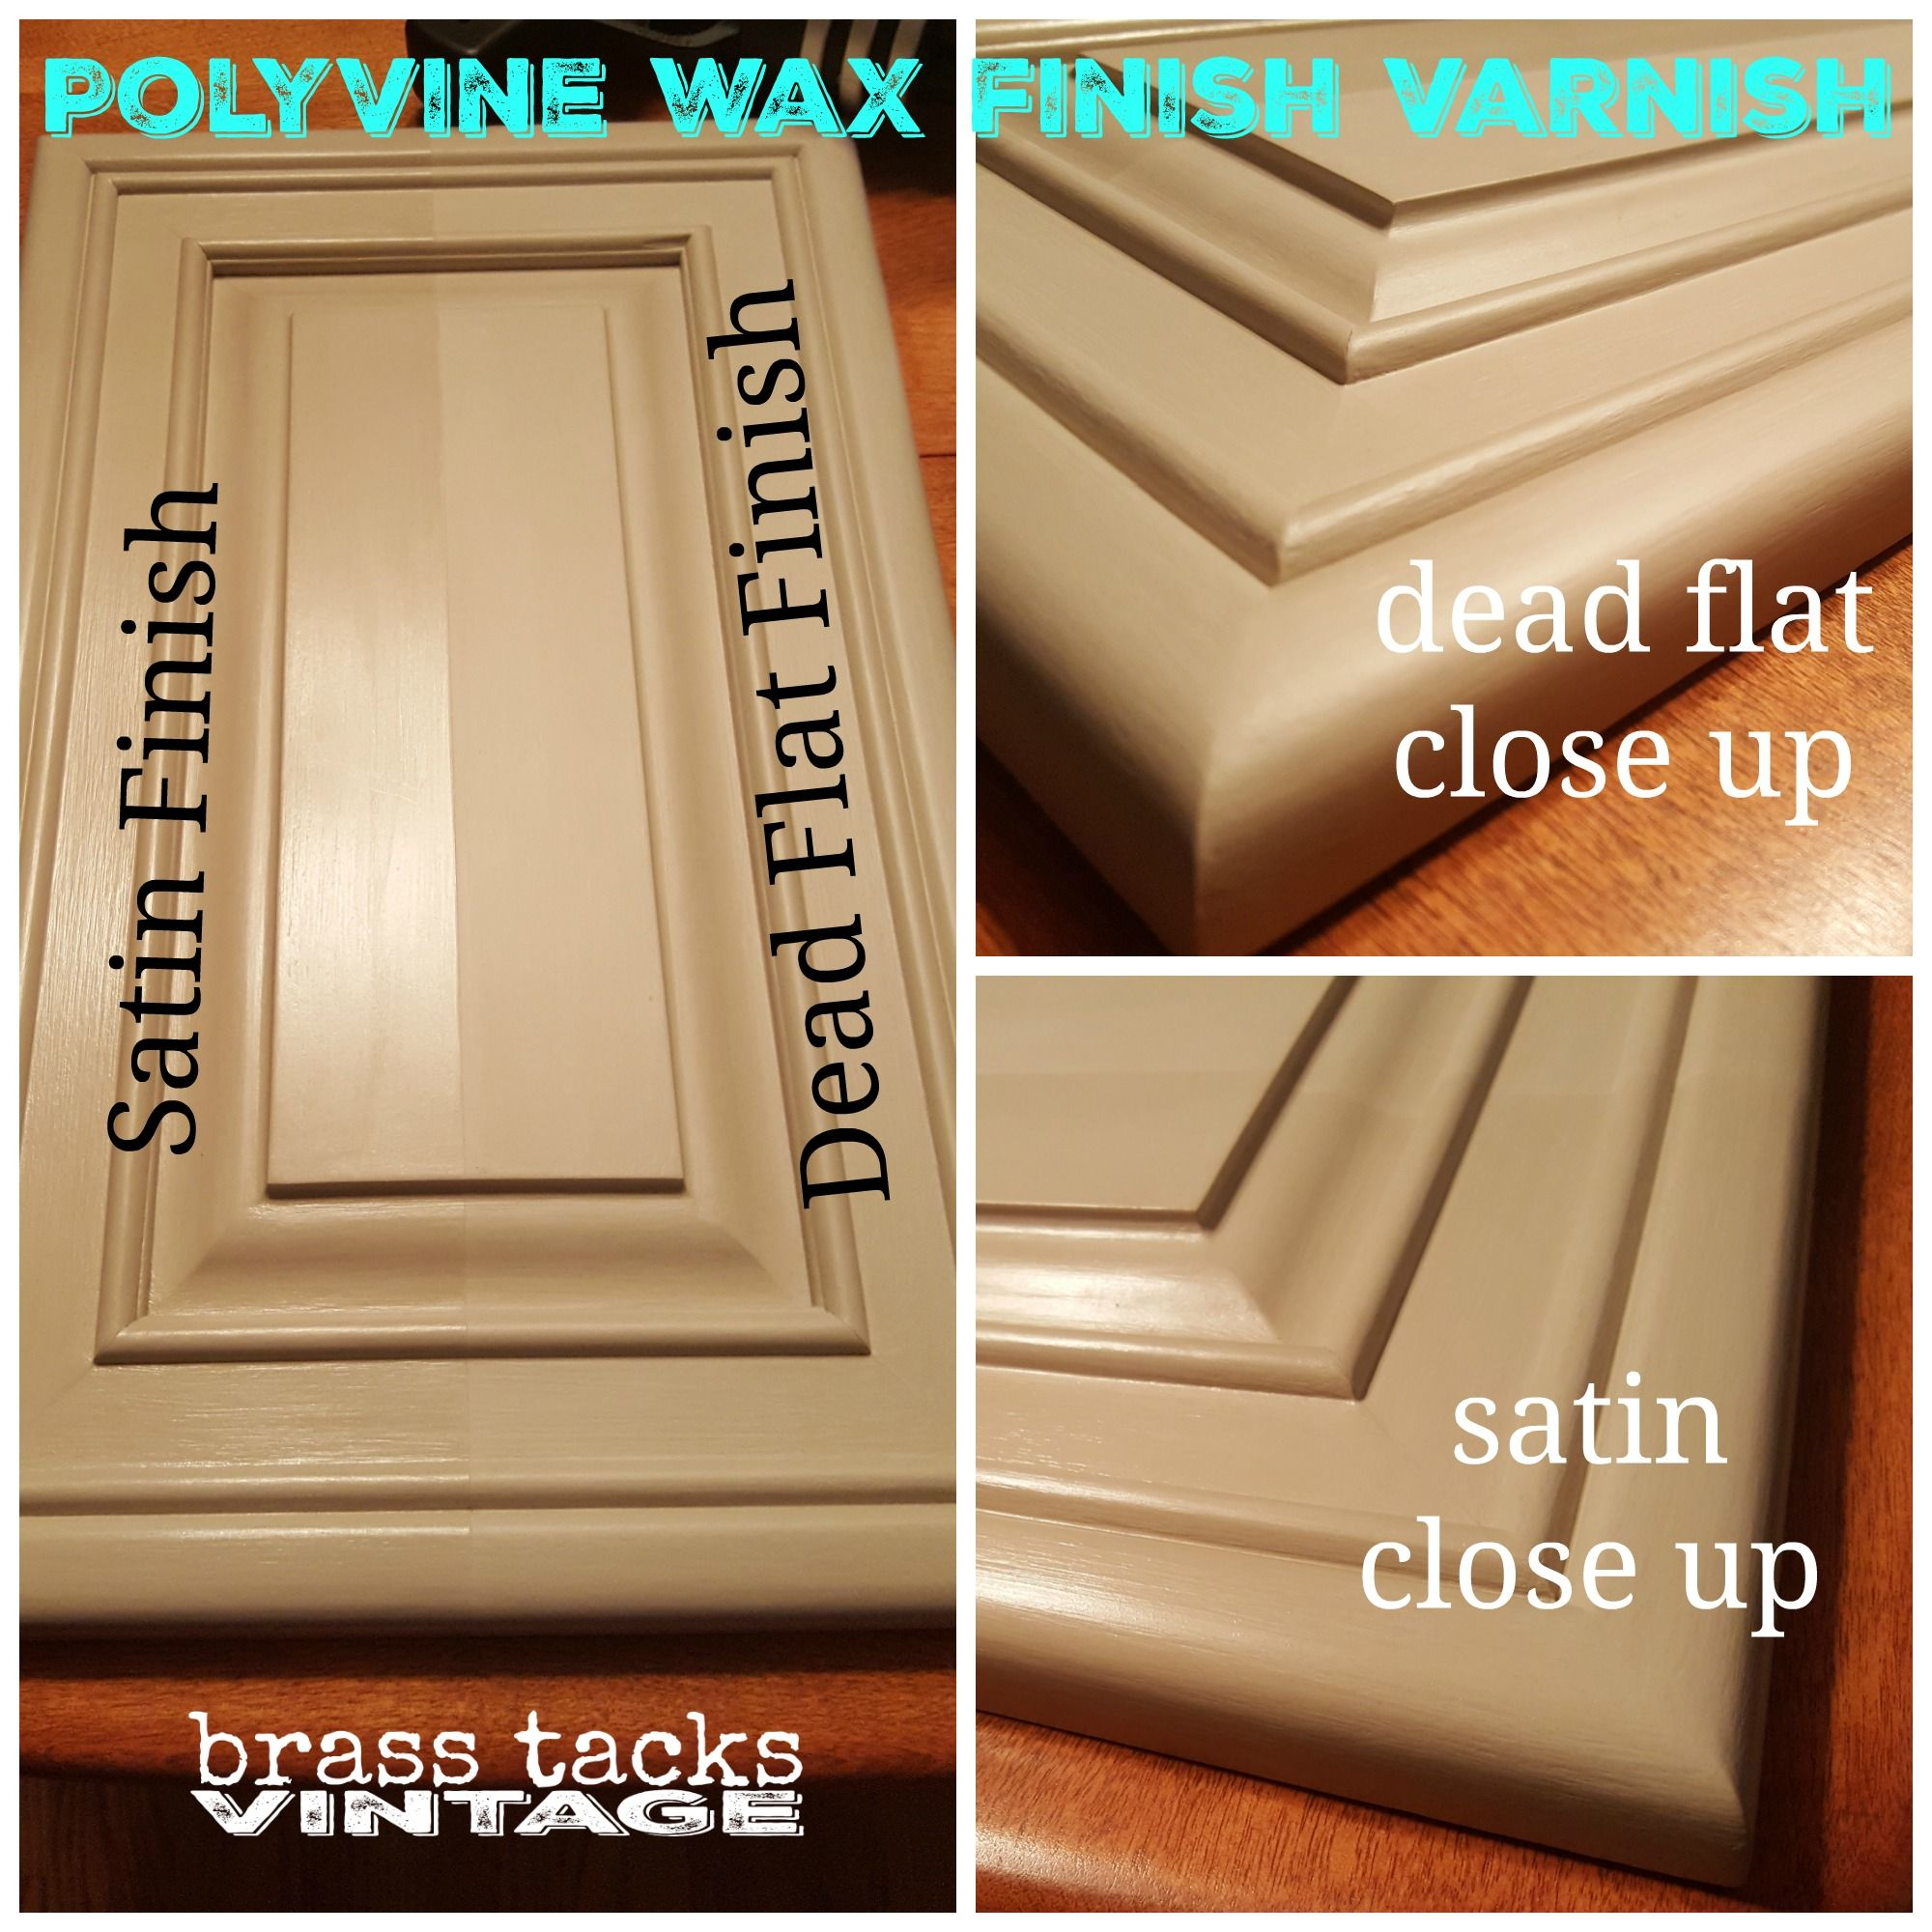 Polyvine Wax Finish Varnish Satin Dead Flat Comparison Polyvine Waxfinishvarnish Brasstacksvintage Brass Tacks Unique Items Products Townhome Decorating